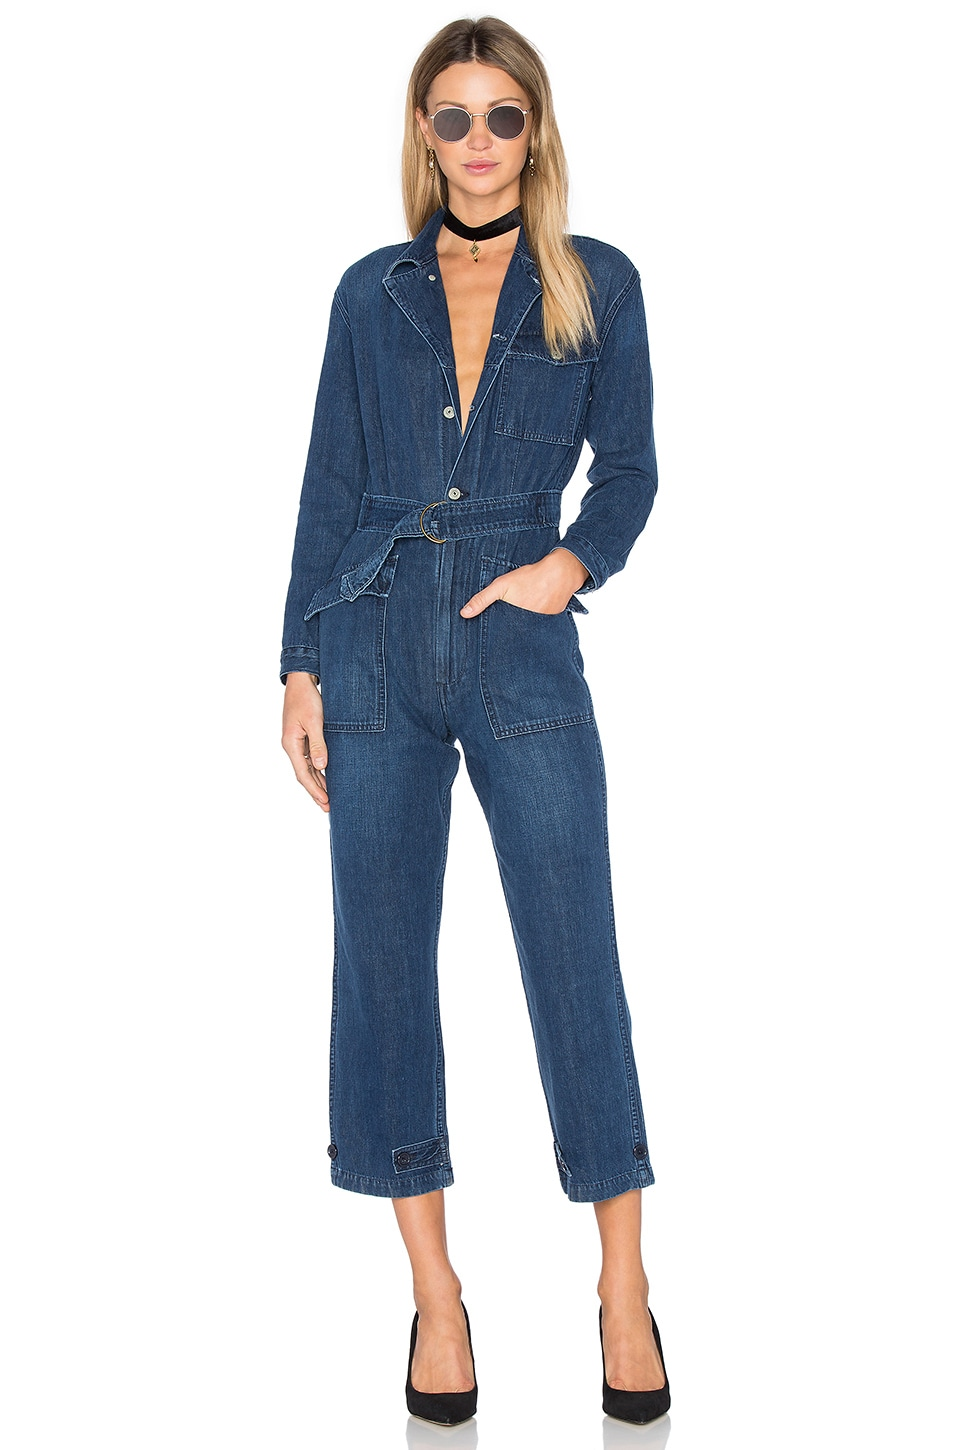 GRLFRND Abbey Denim Flight Suit in Atomic